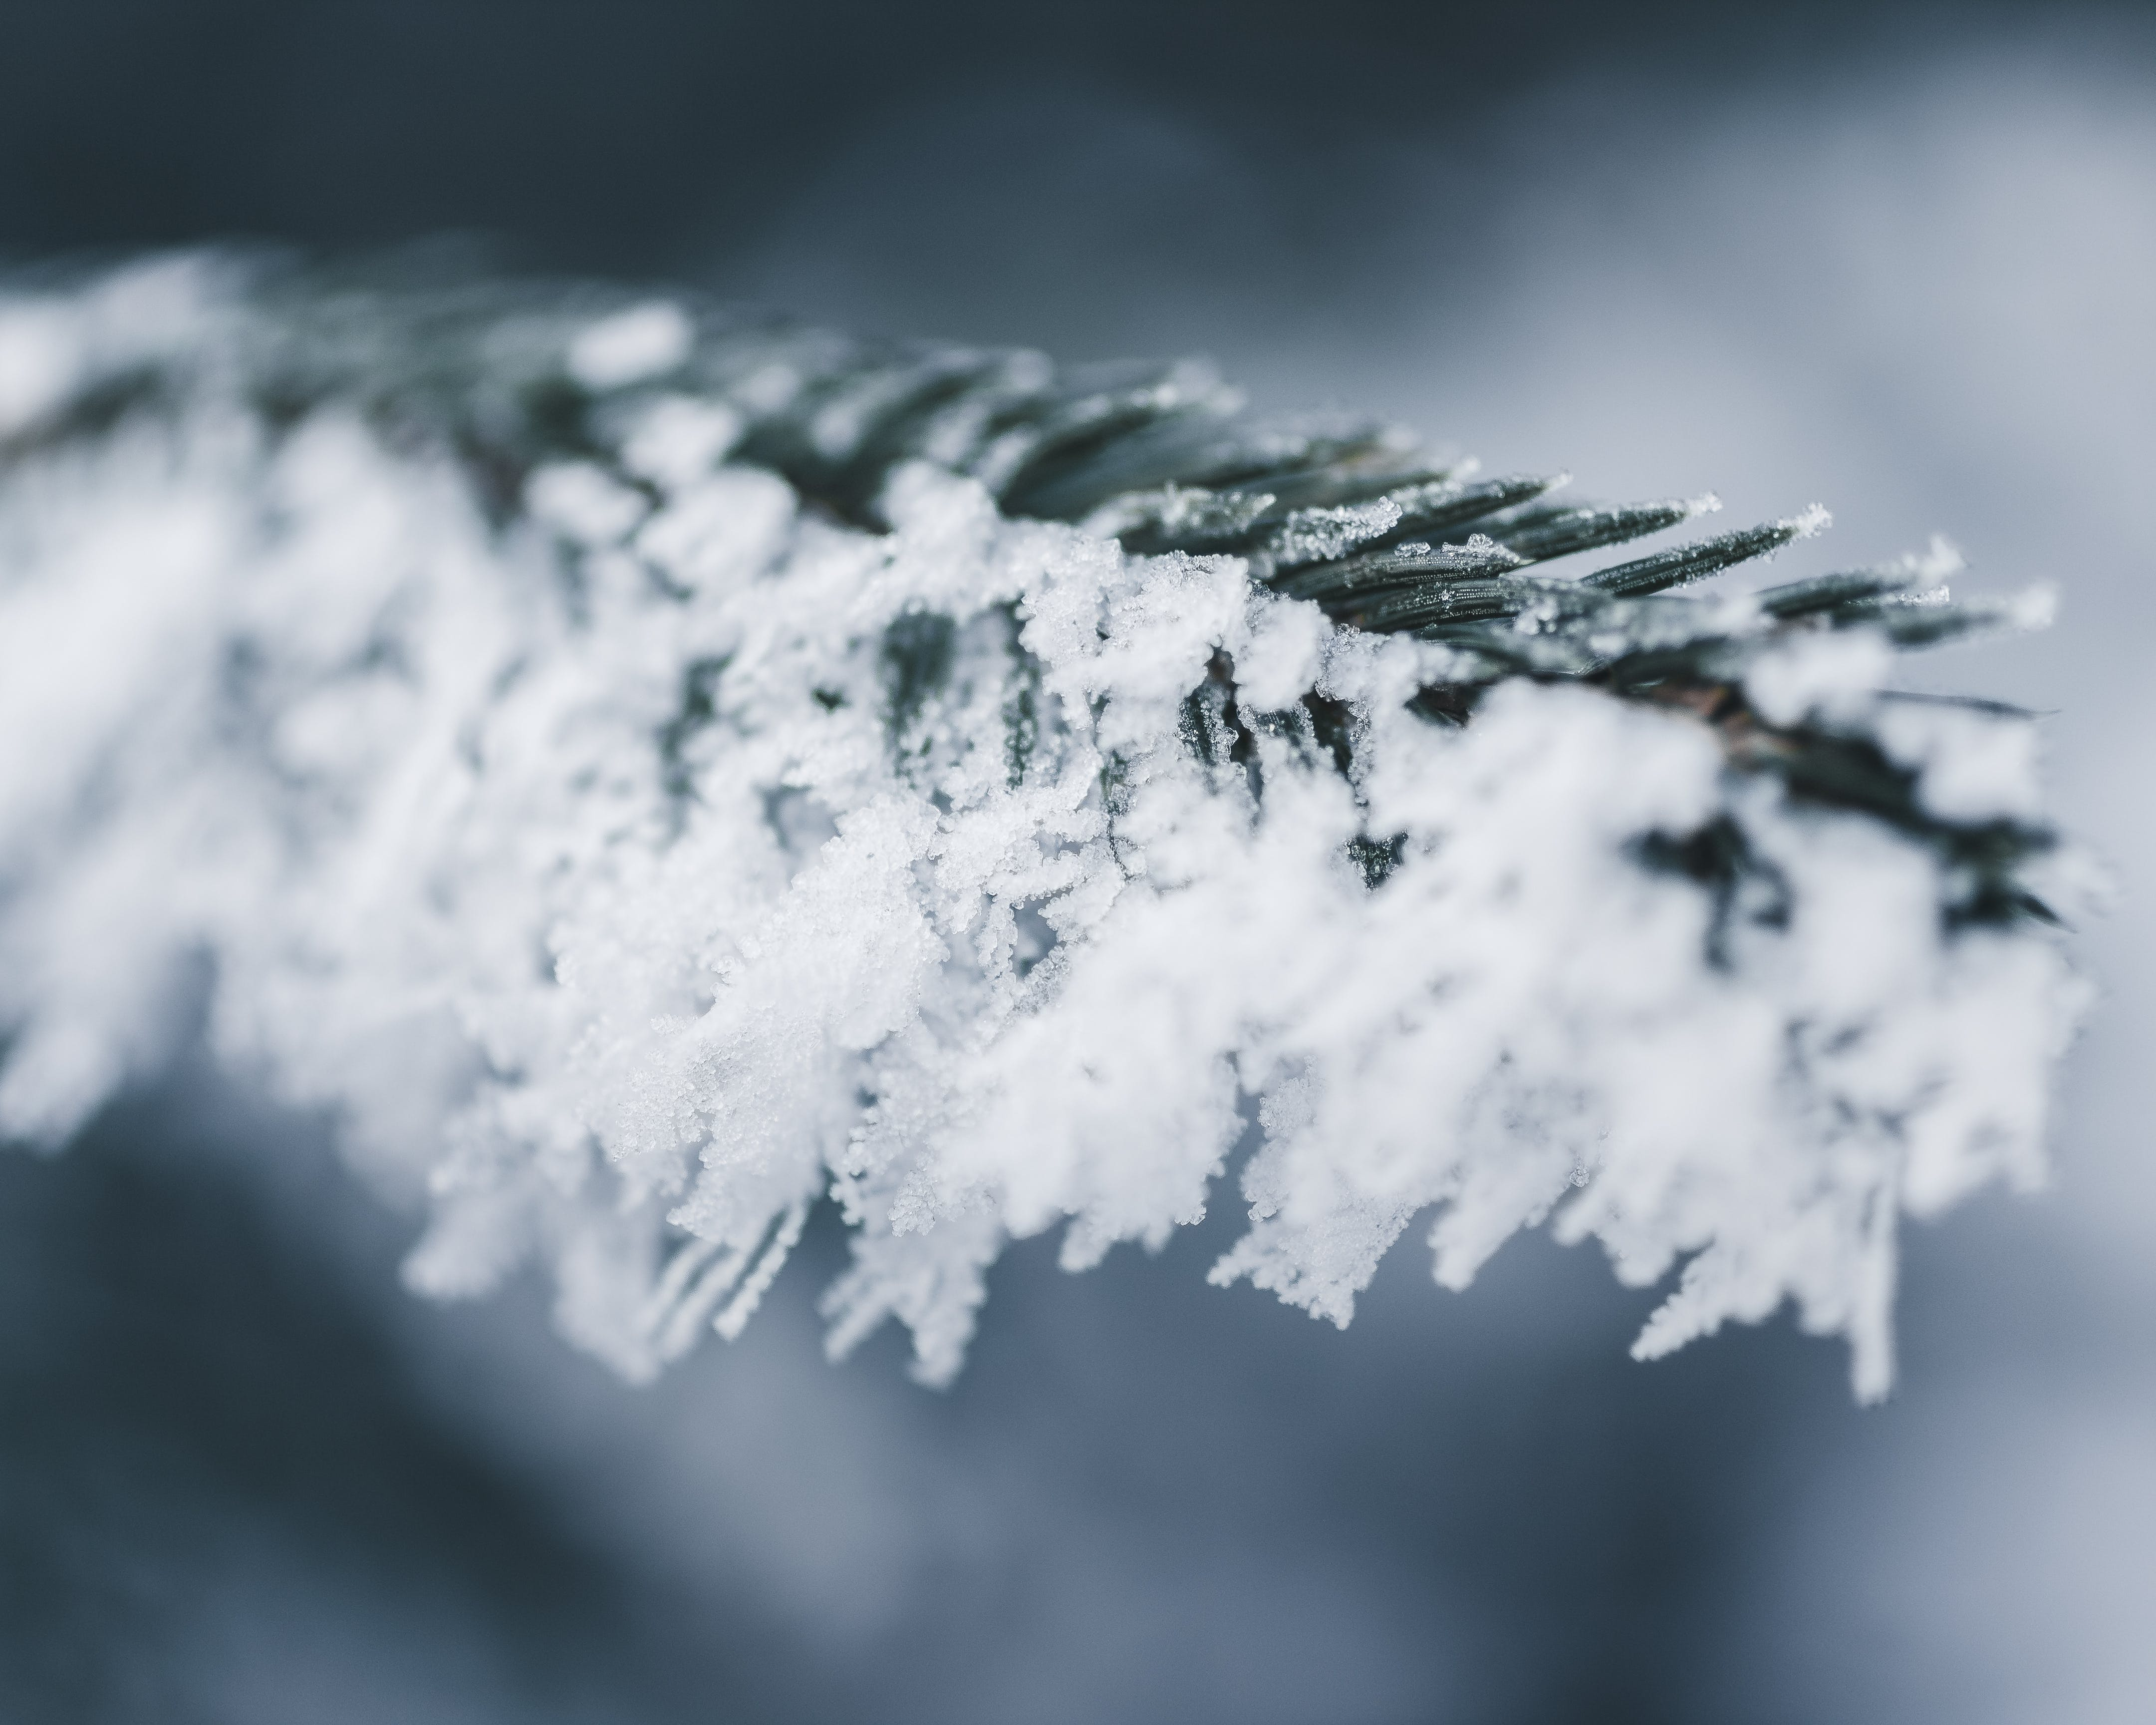 Close-up Photo Of Snow Covered Branch